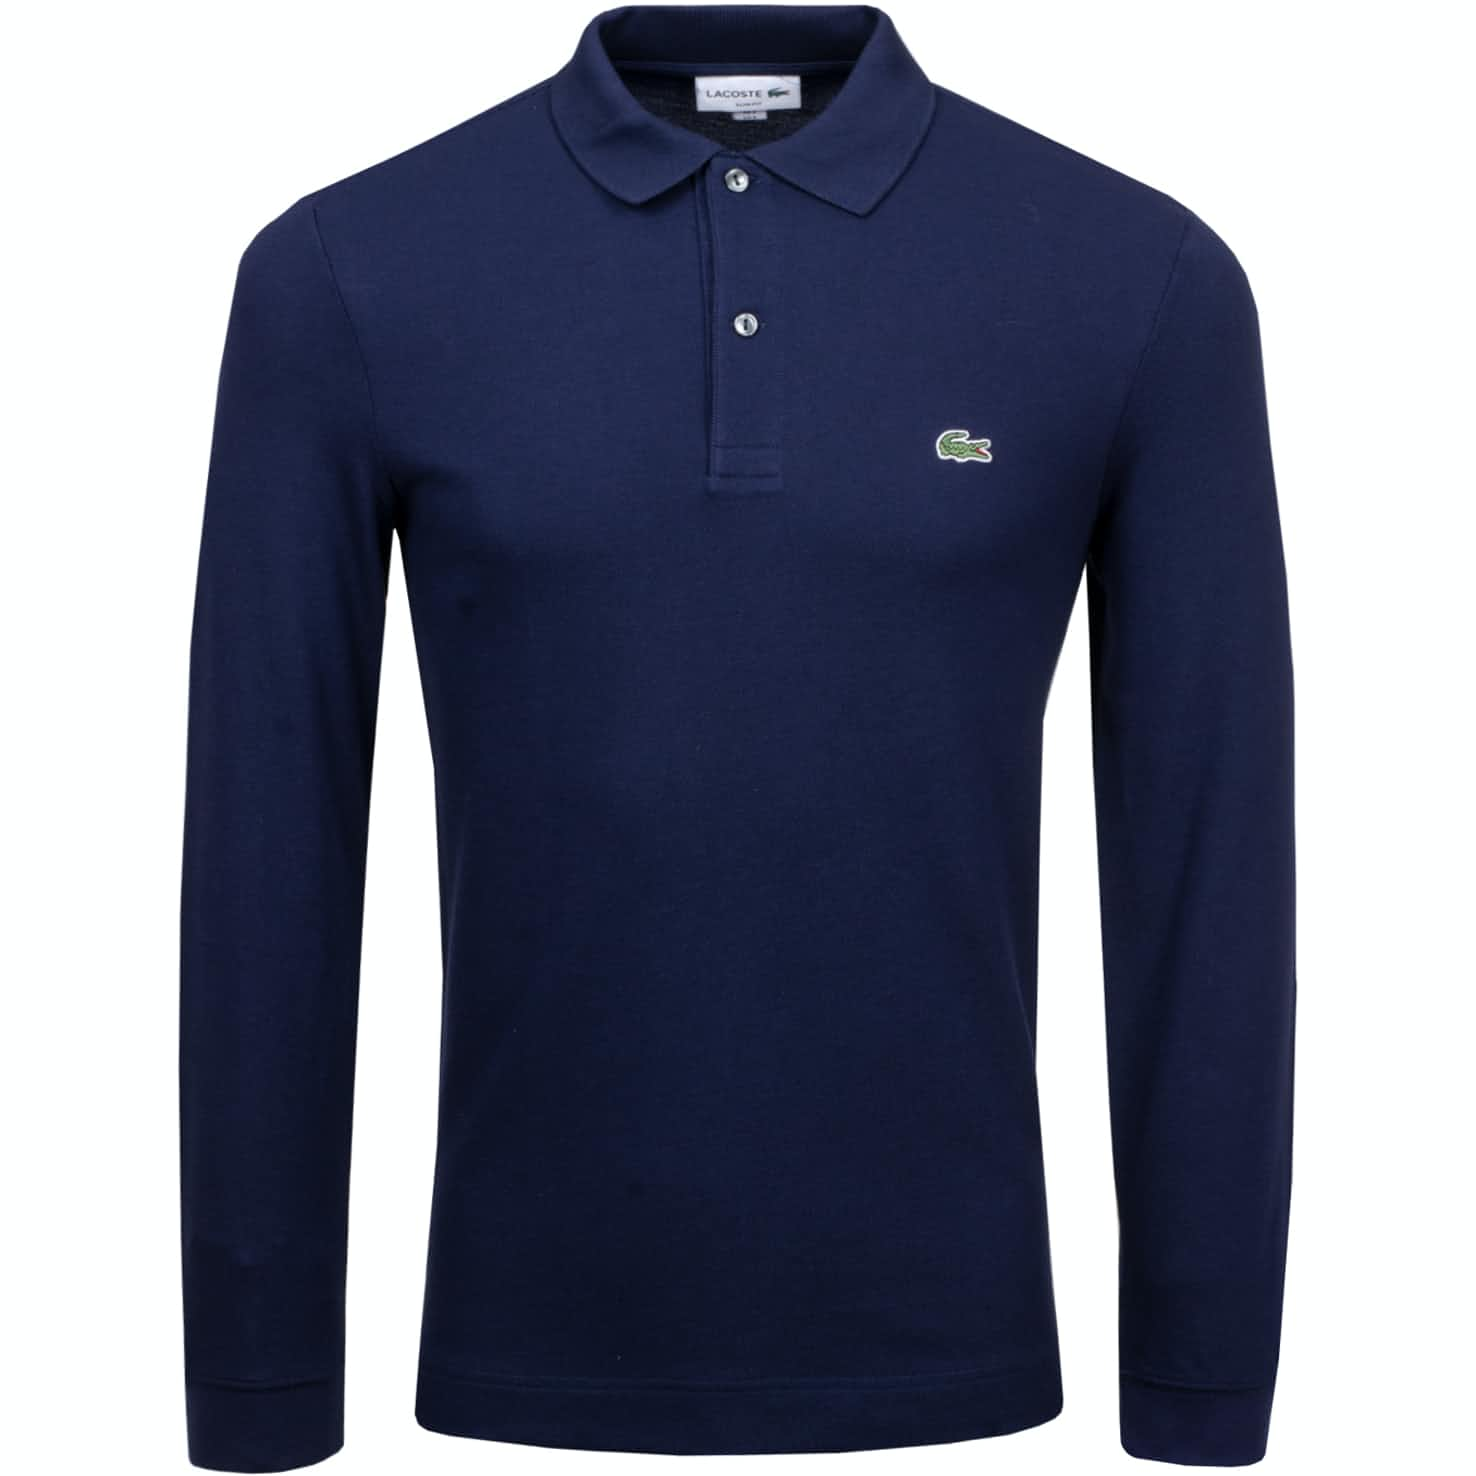 LS Slim Fit Pique Polo Navy - 2020